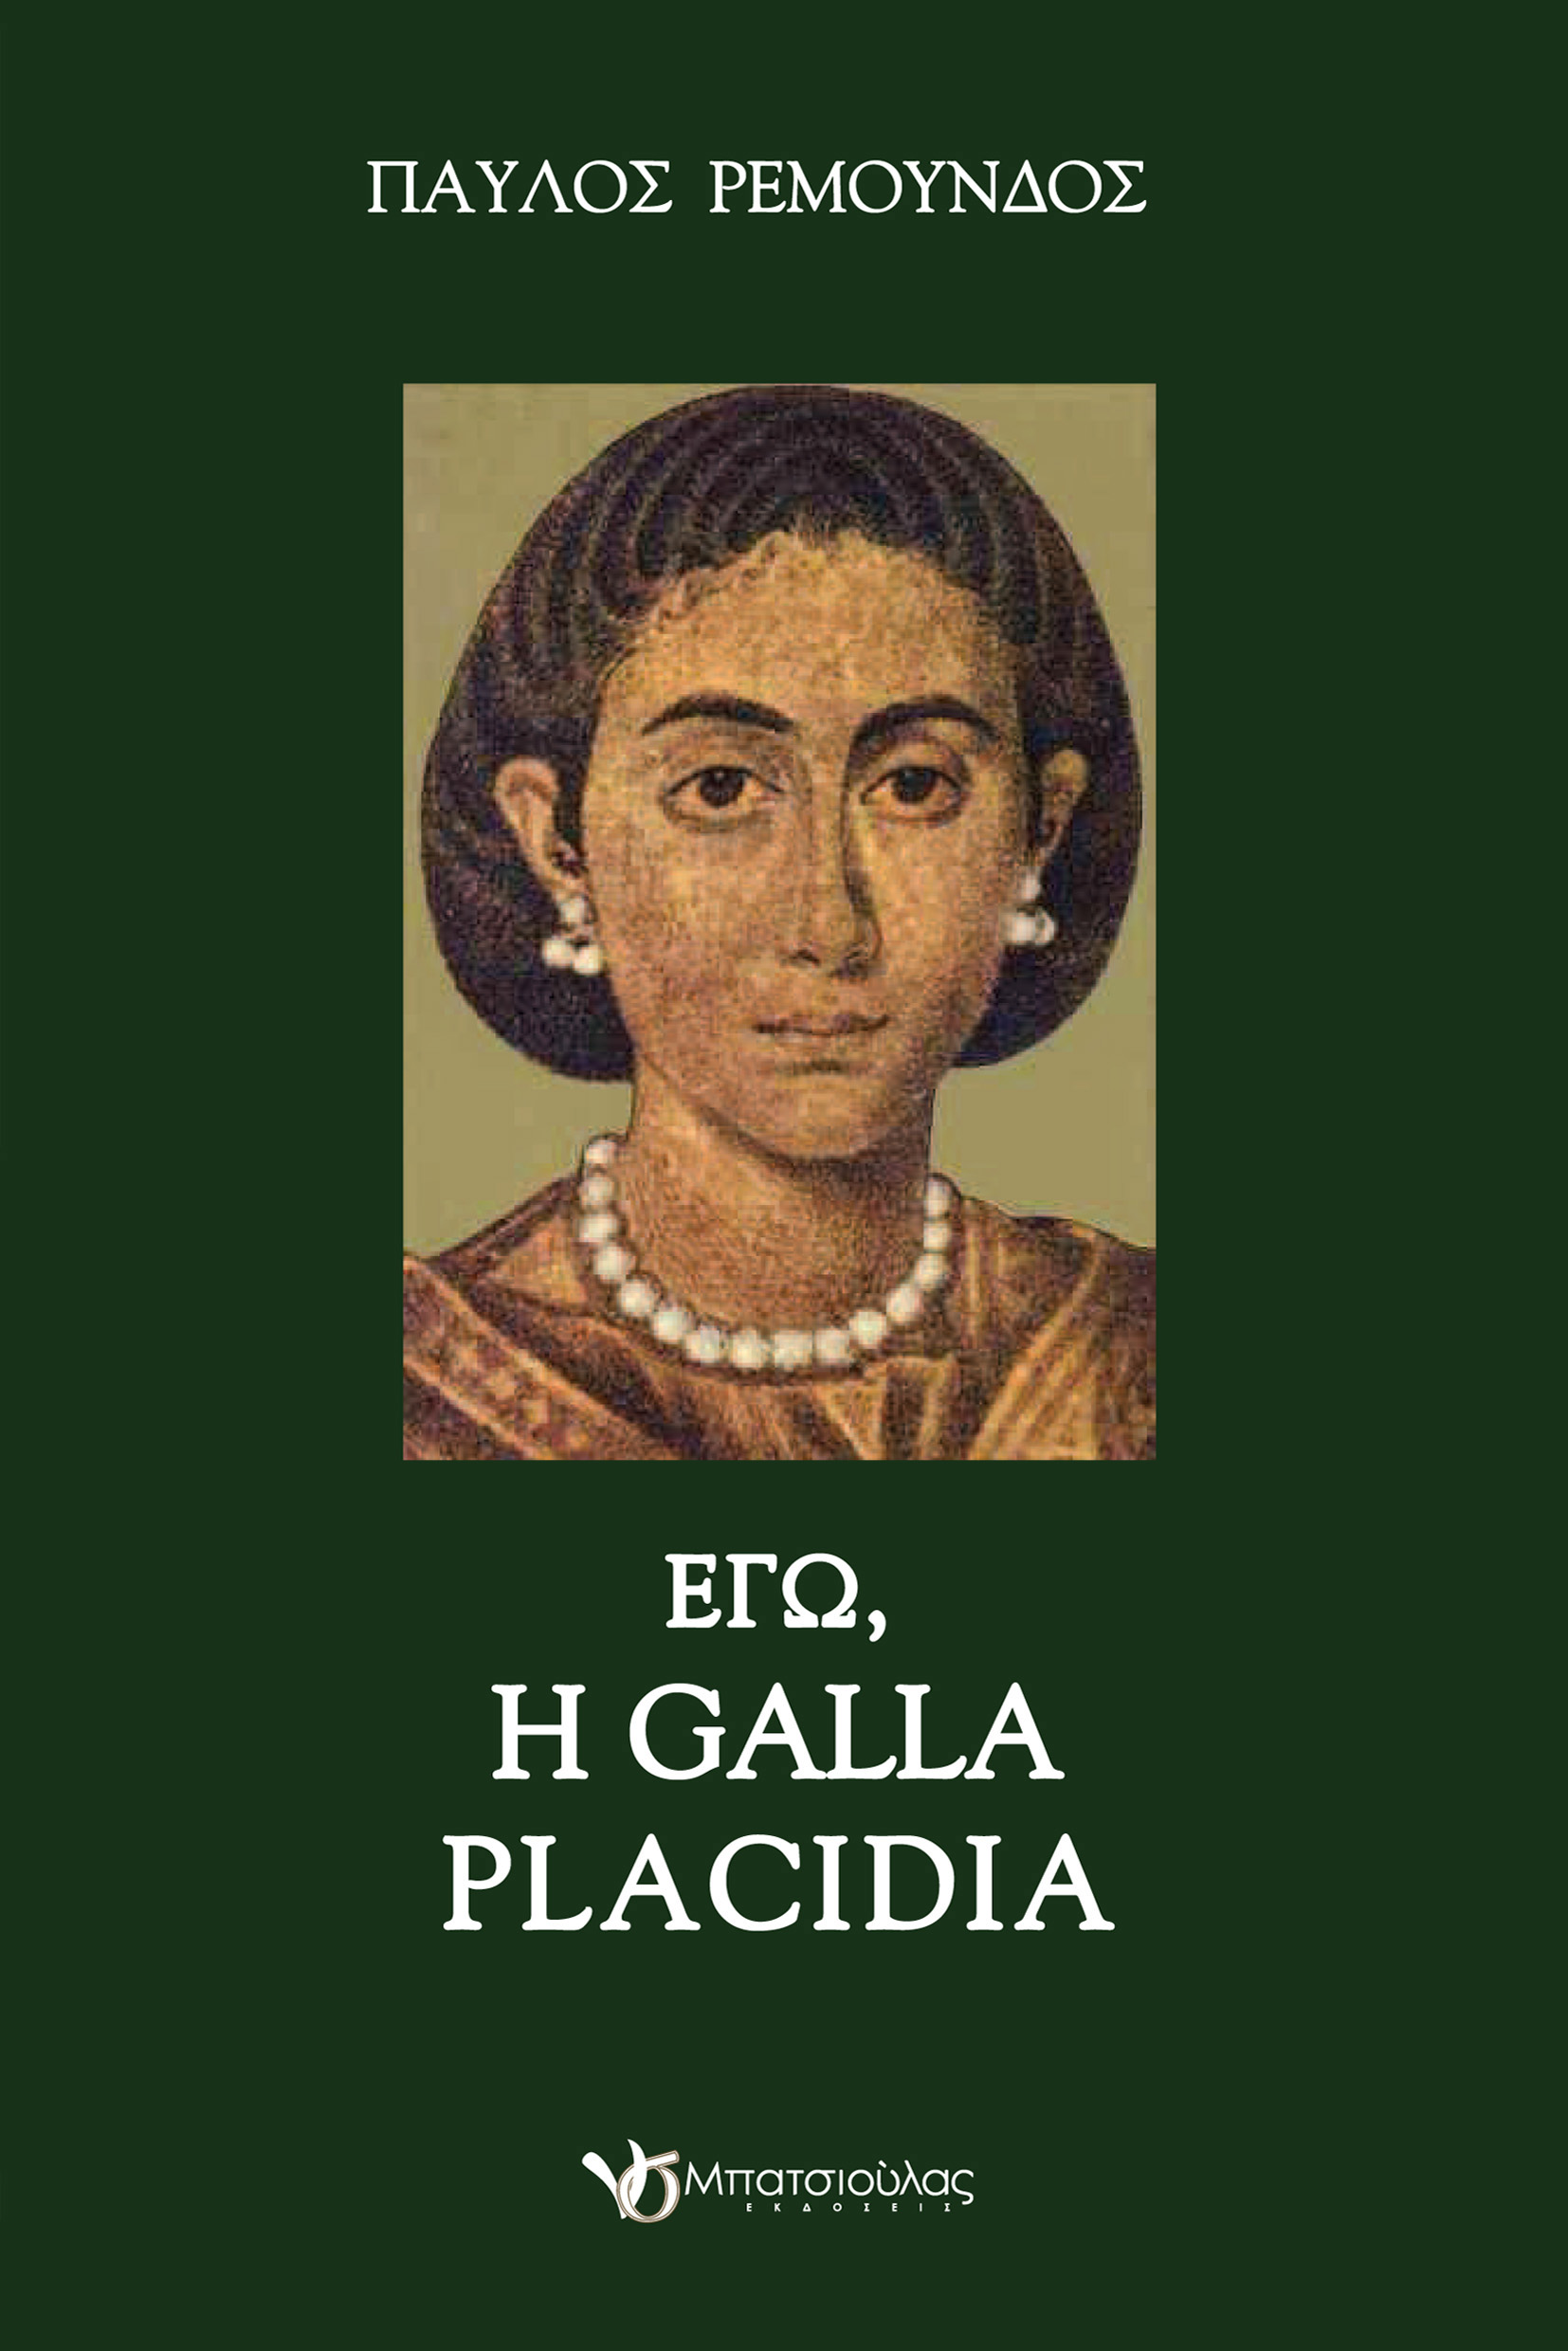 Εγώ, η Galla Placidia